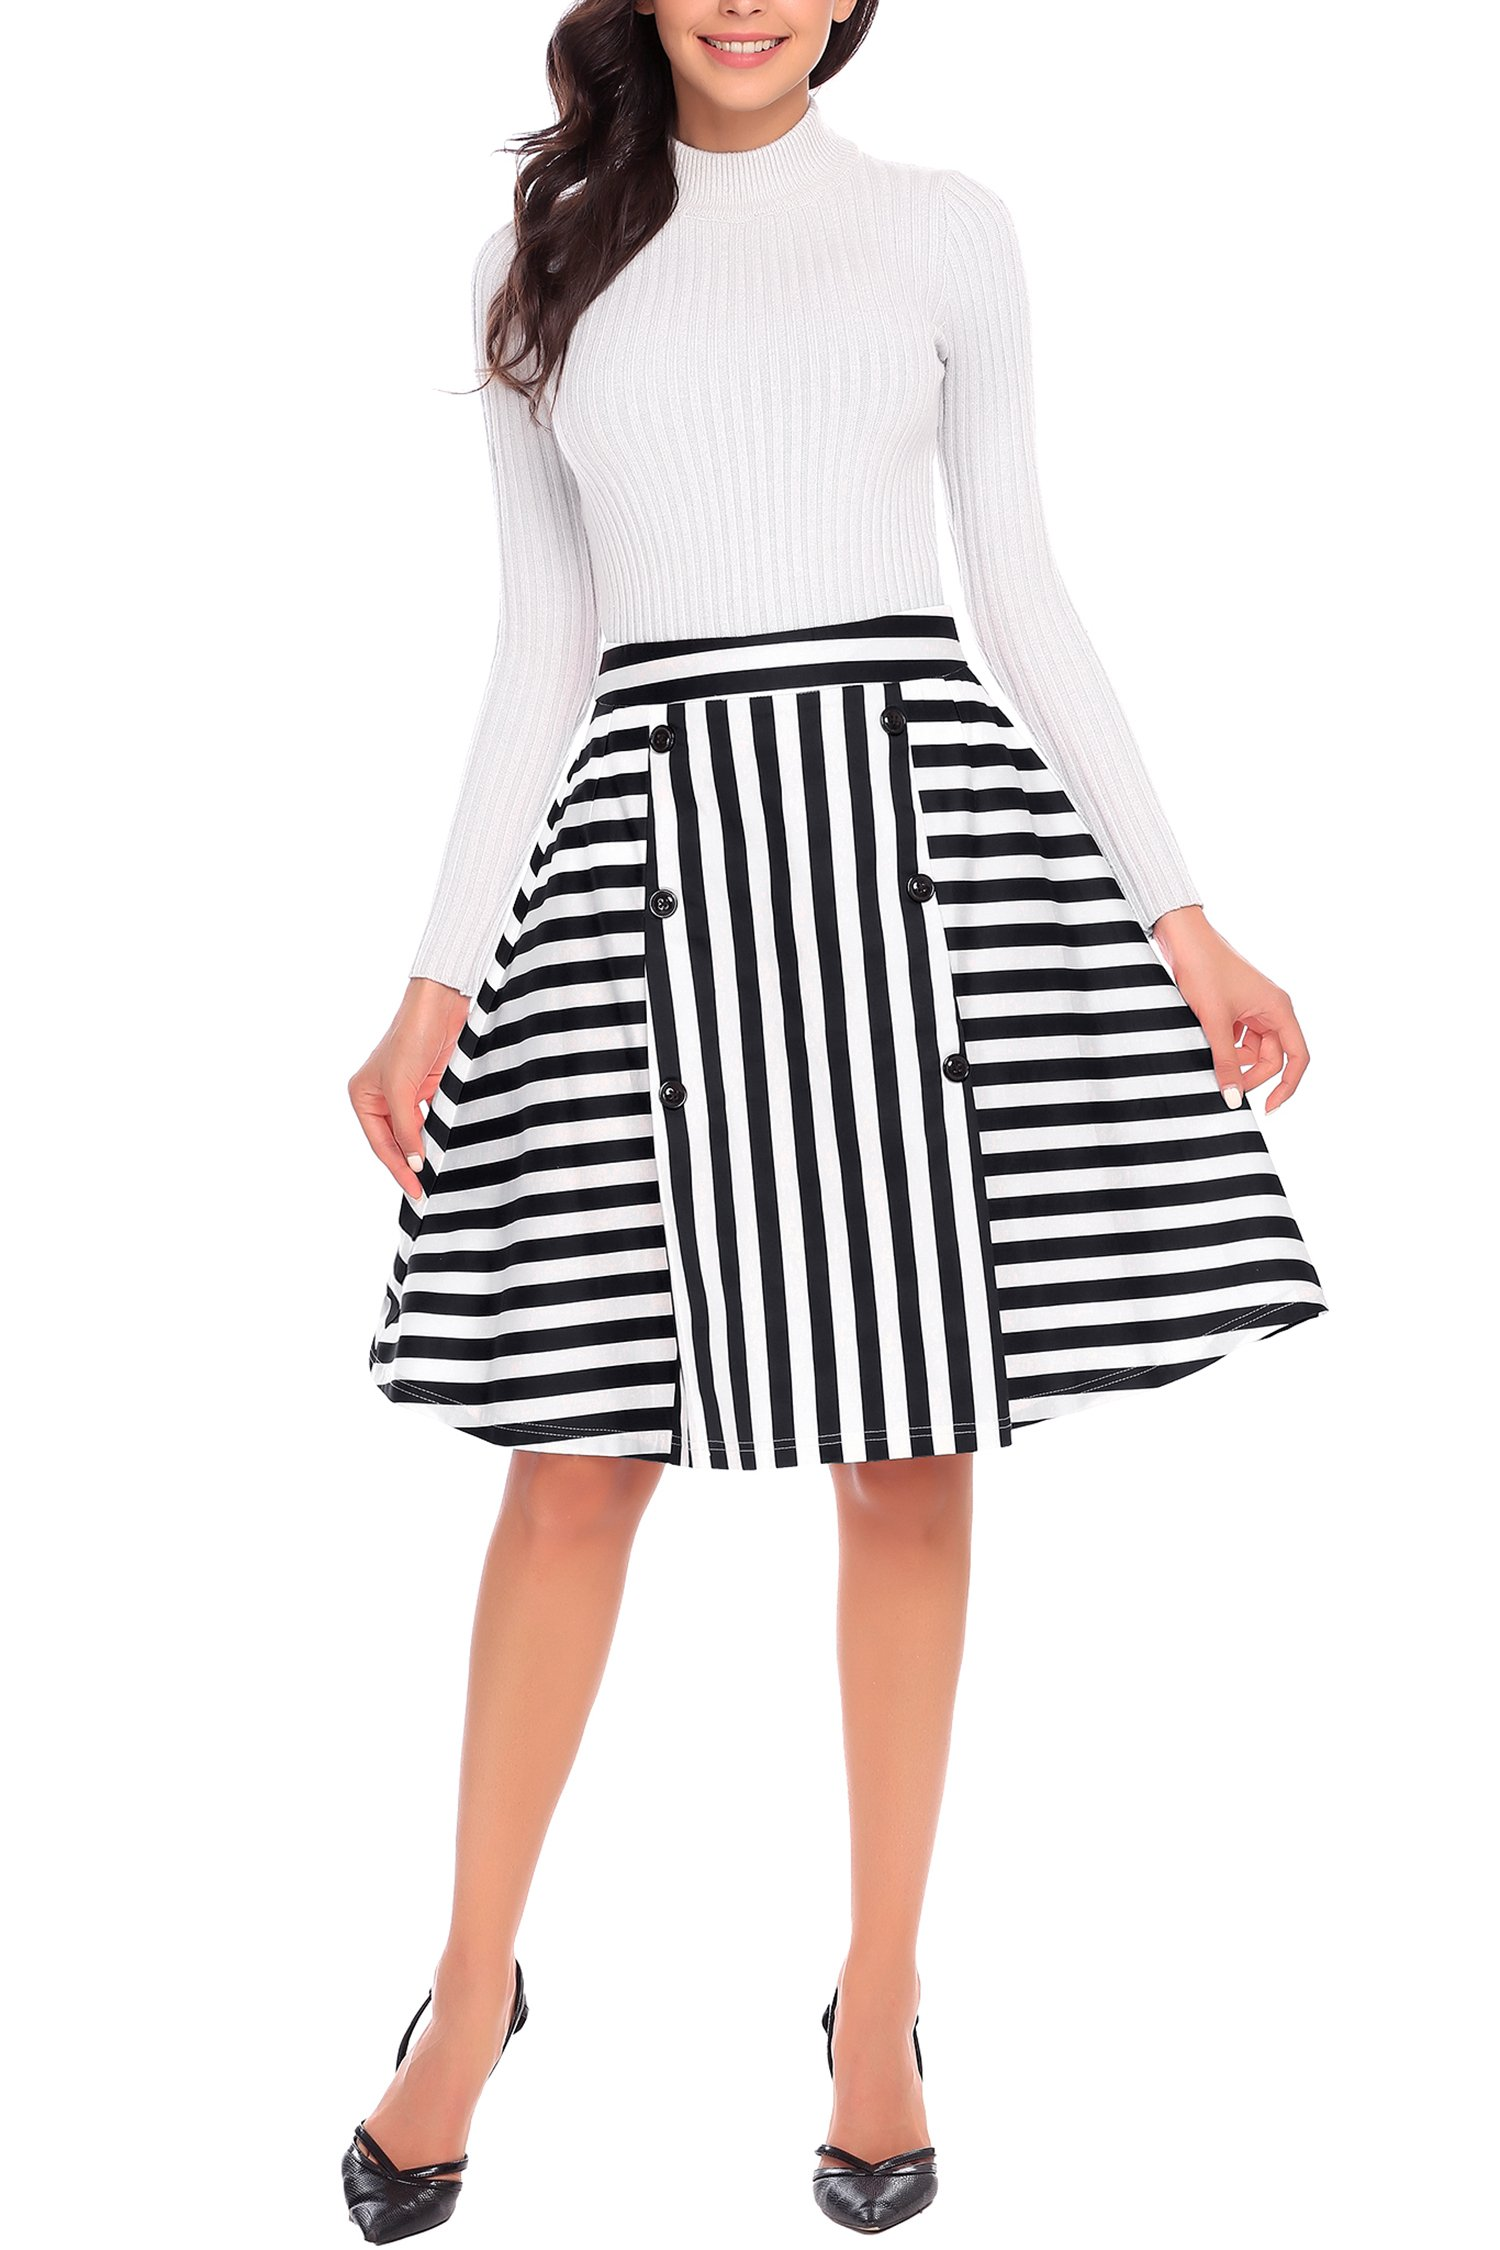 Shine Flare A-Line Midi Skirt Black Striped High Waist Vintage Flowy Cocktail Dance Skirts For Women Party Autumn Winter, Black Stripes, Medium